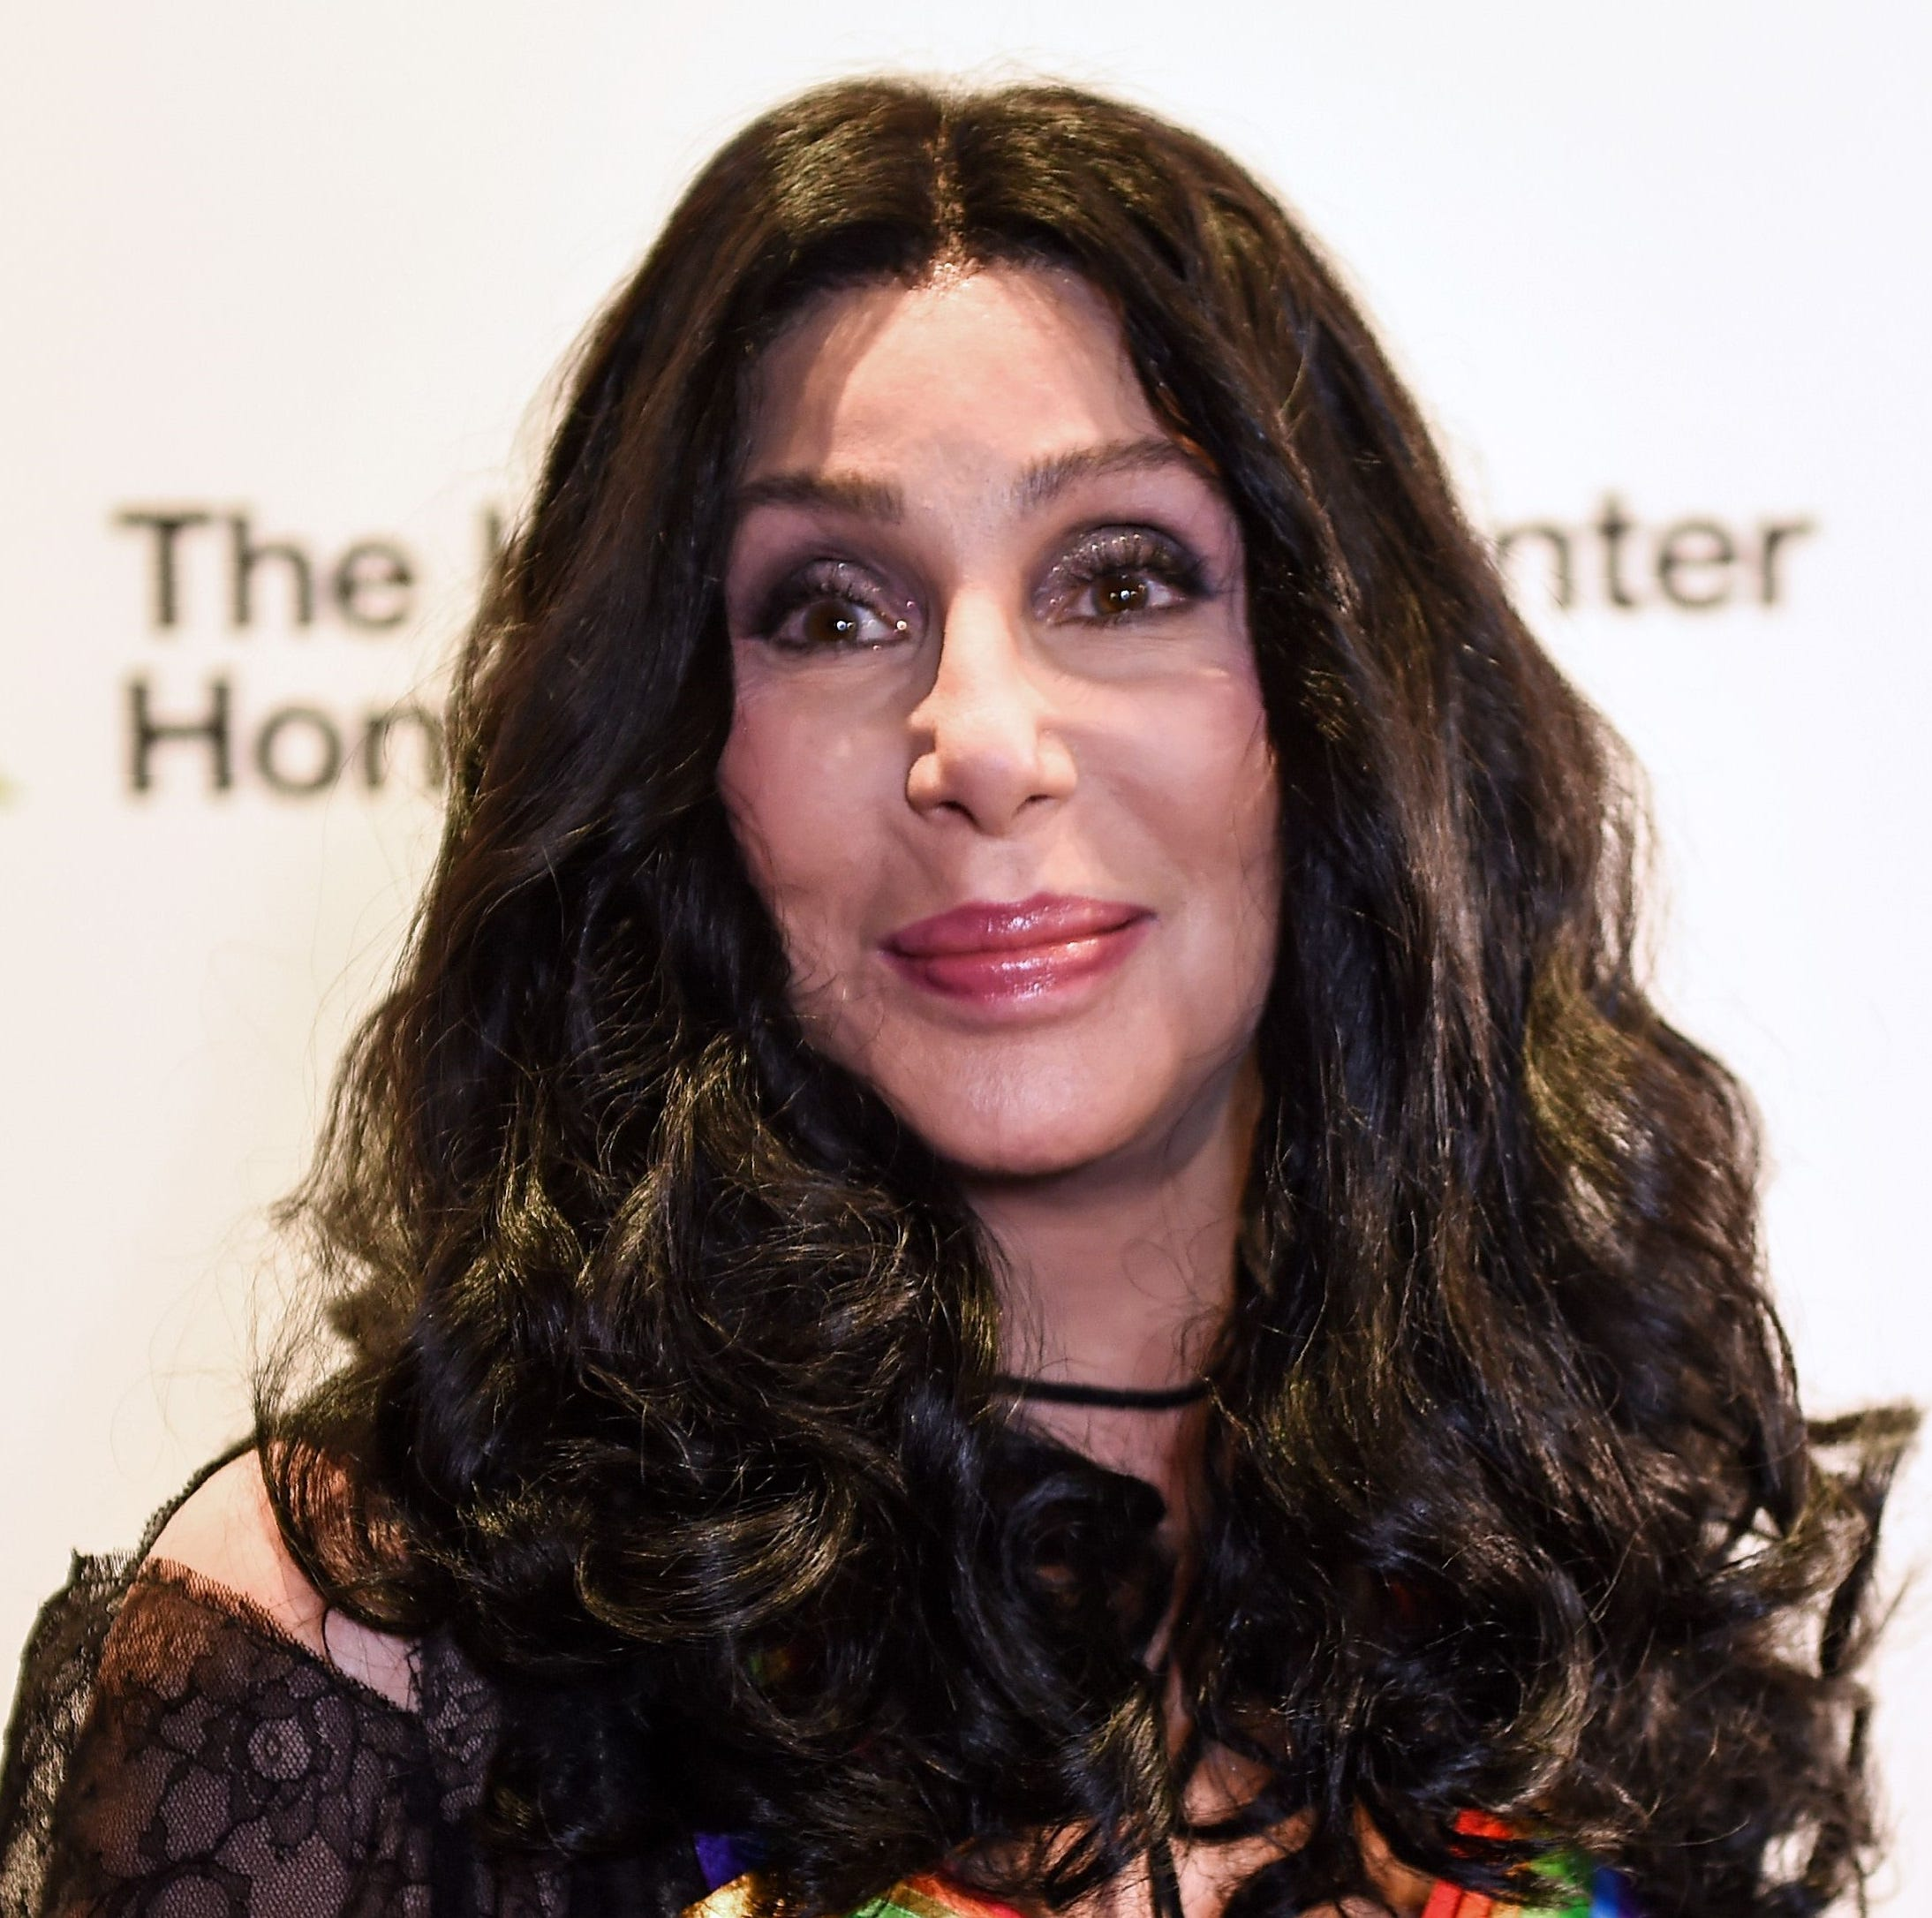 Cher announces her first Phoenix-area concert in 5 years, and it sounds spectacular